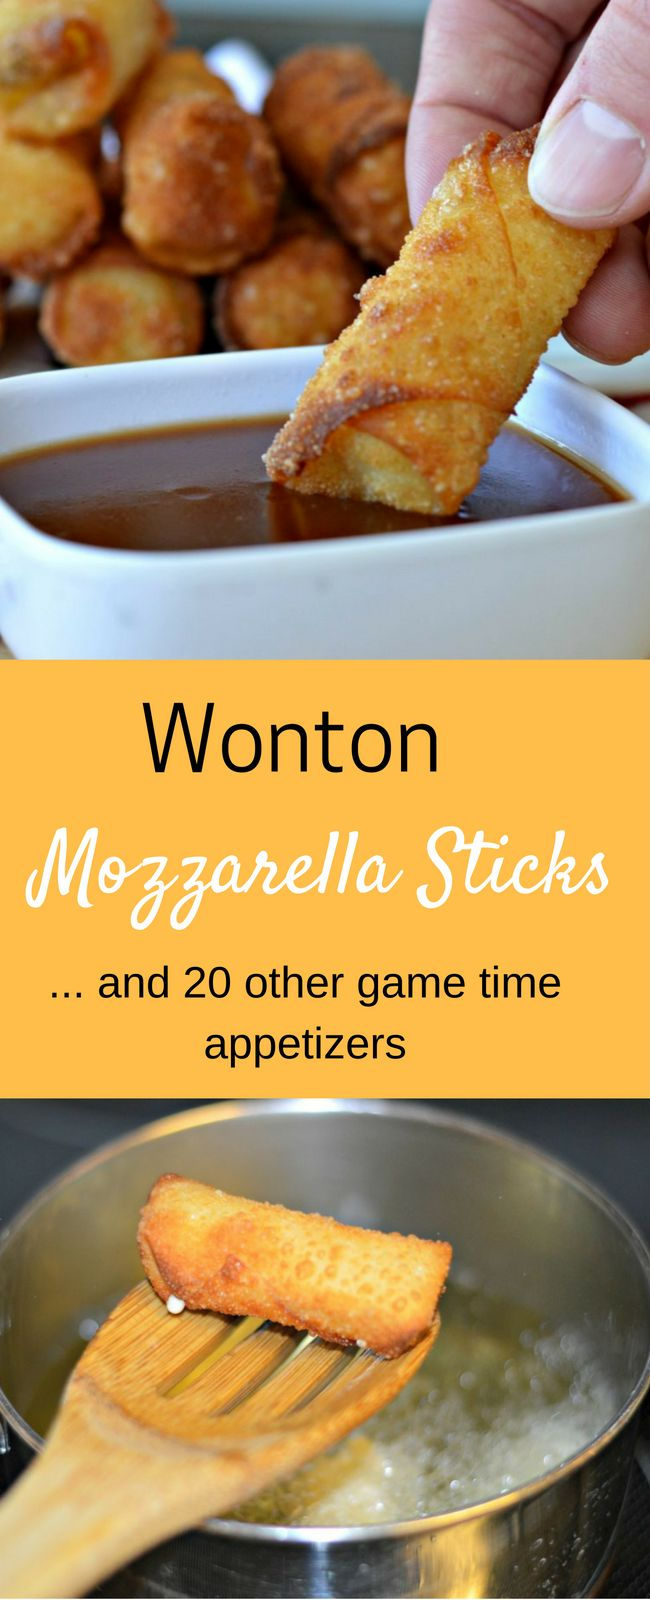 These Wonton Mozzarella Sticks are perfect for game time or anytime! Also, this post includes 20 other game time appetizers too! #Ad #FrolicIntoFallWithTampico